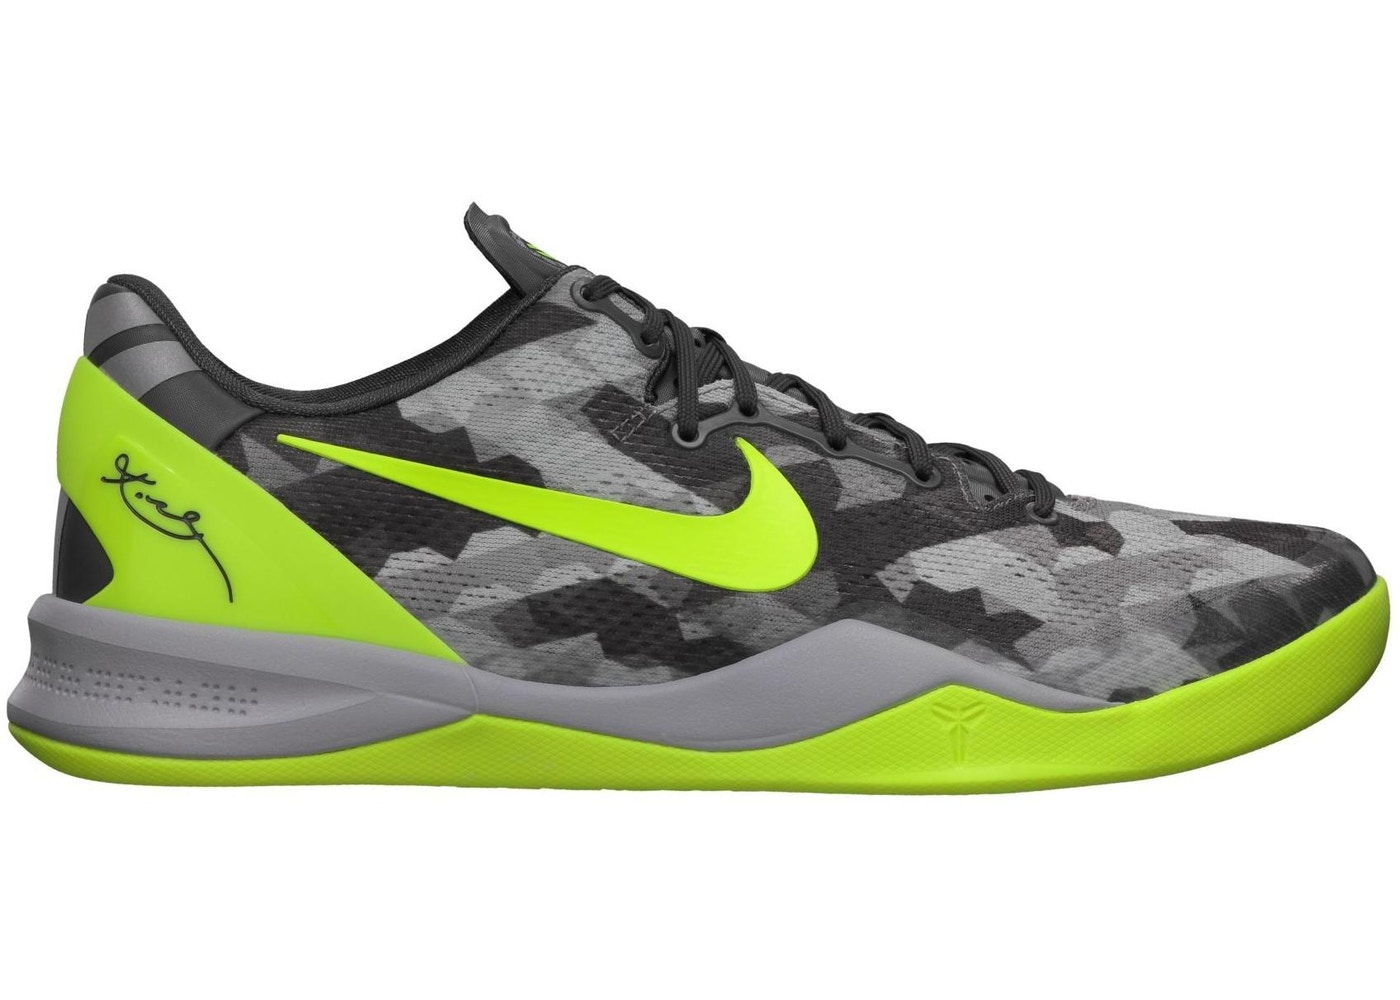 quality design 0c49d 6a761 Buy Nike Kobe 8 Shoes   Deadstock Sneakers